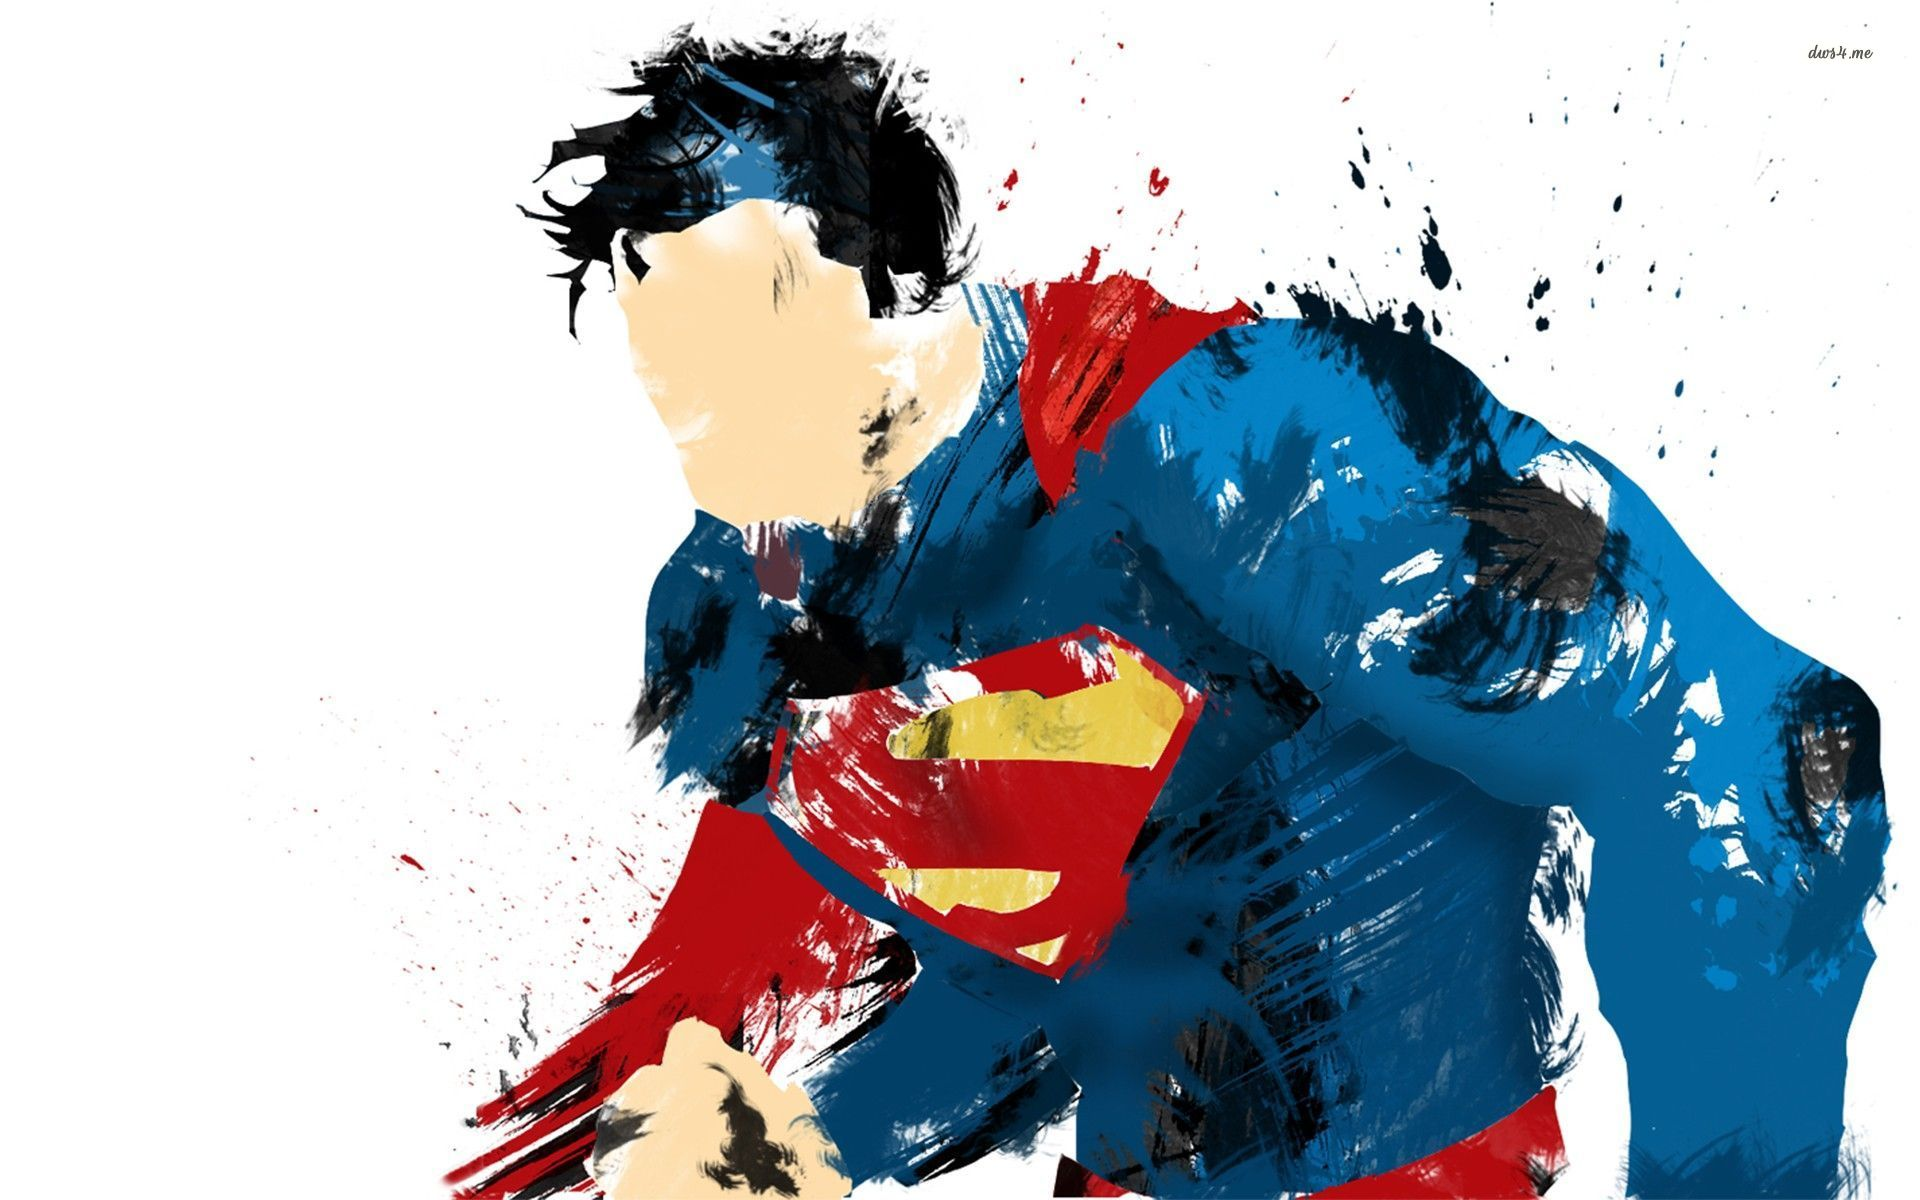 superman hd wallpaper for desktop 2